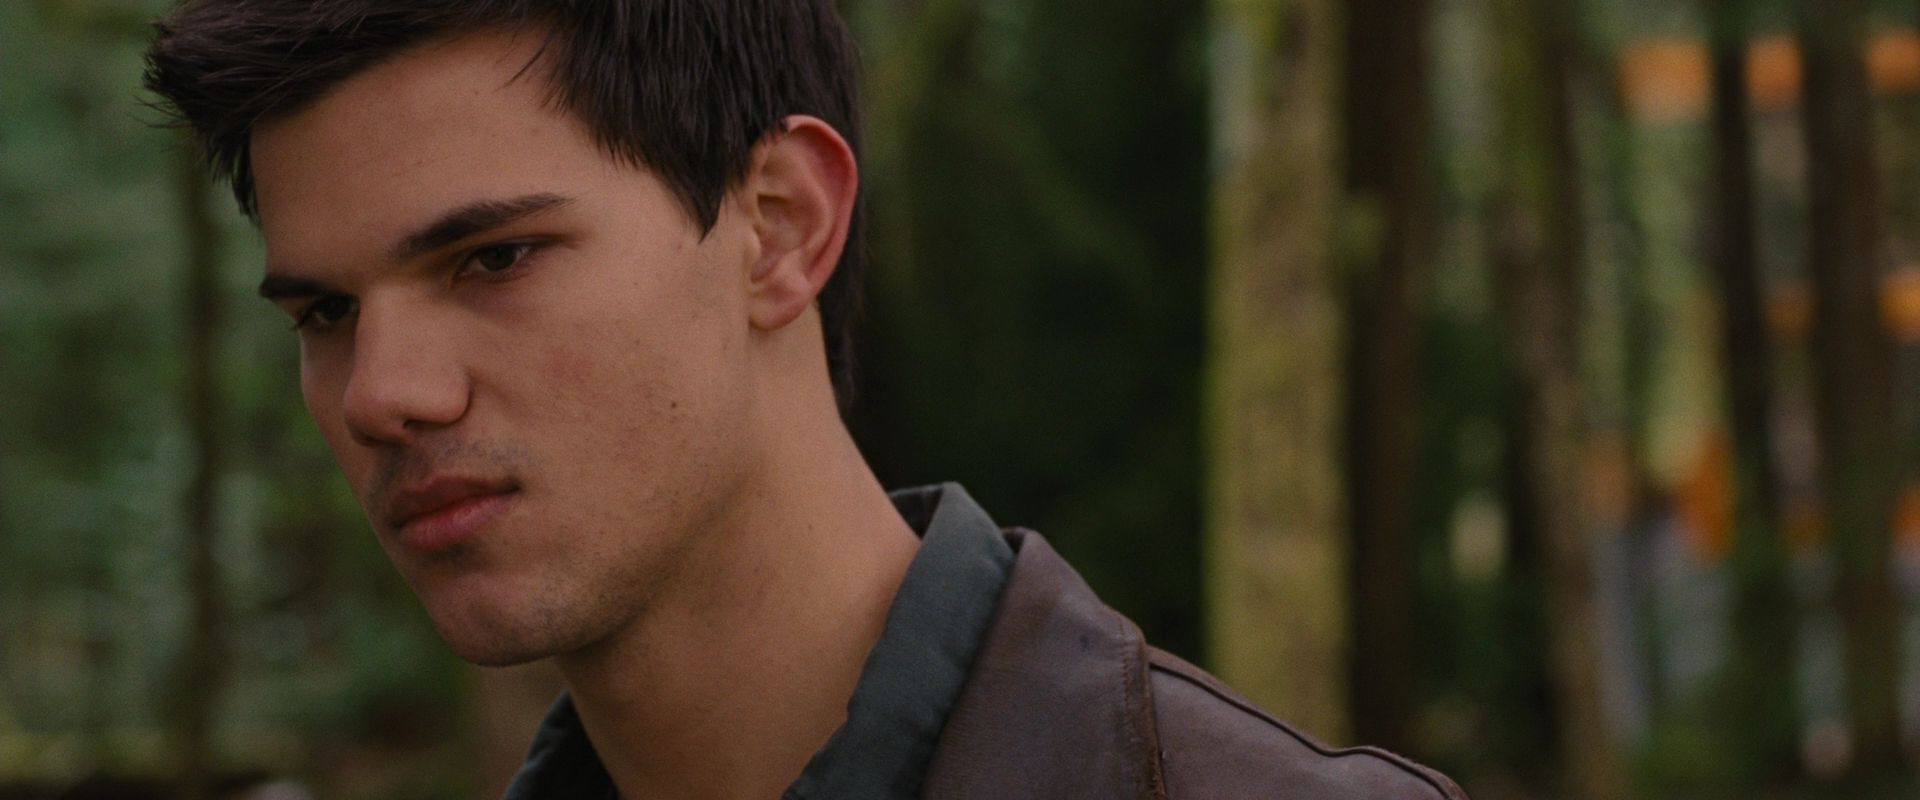 Jacob black in movie